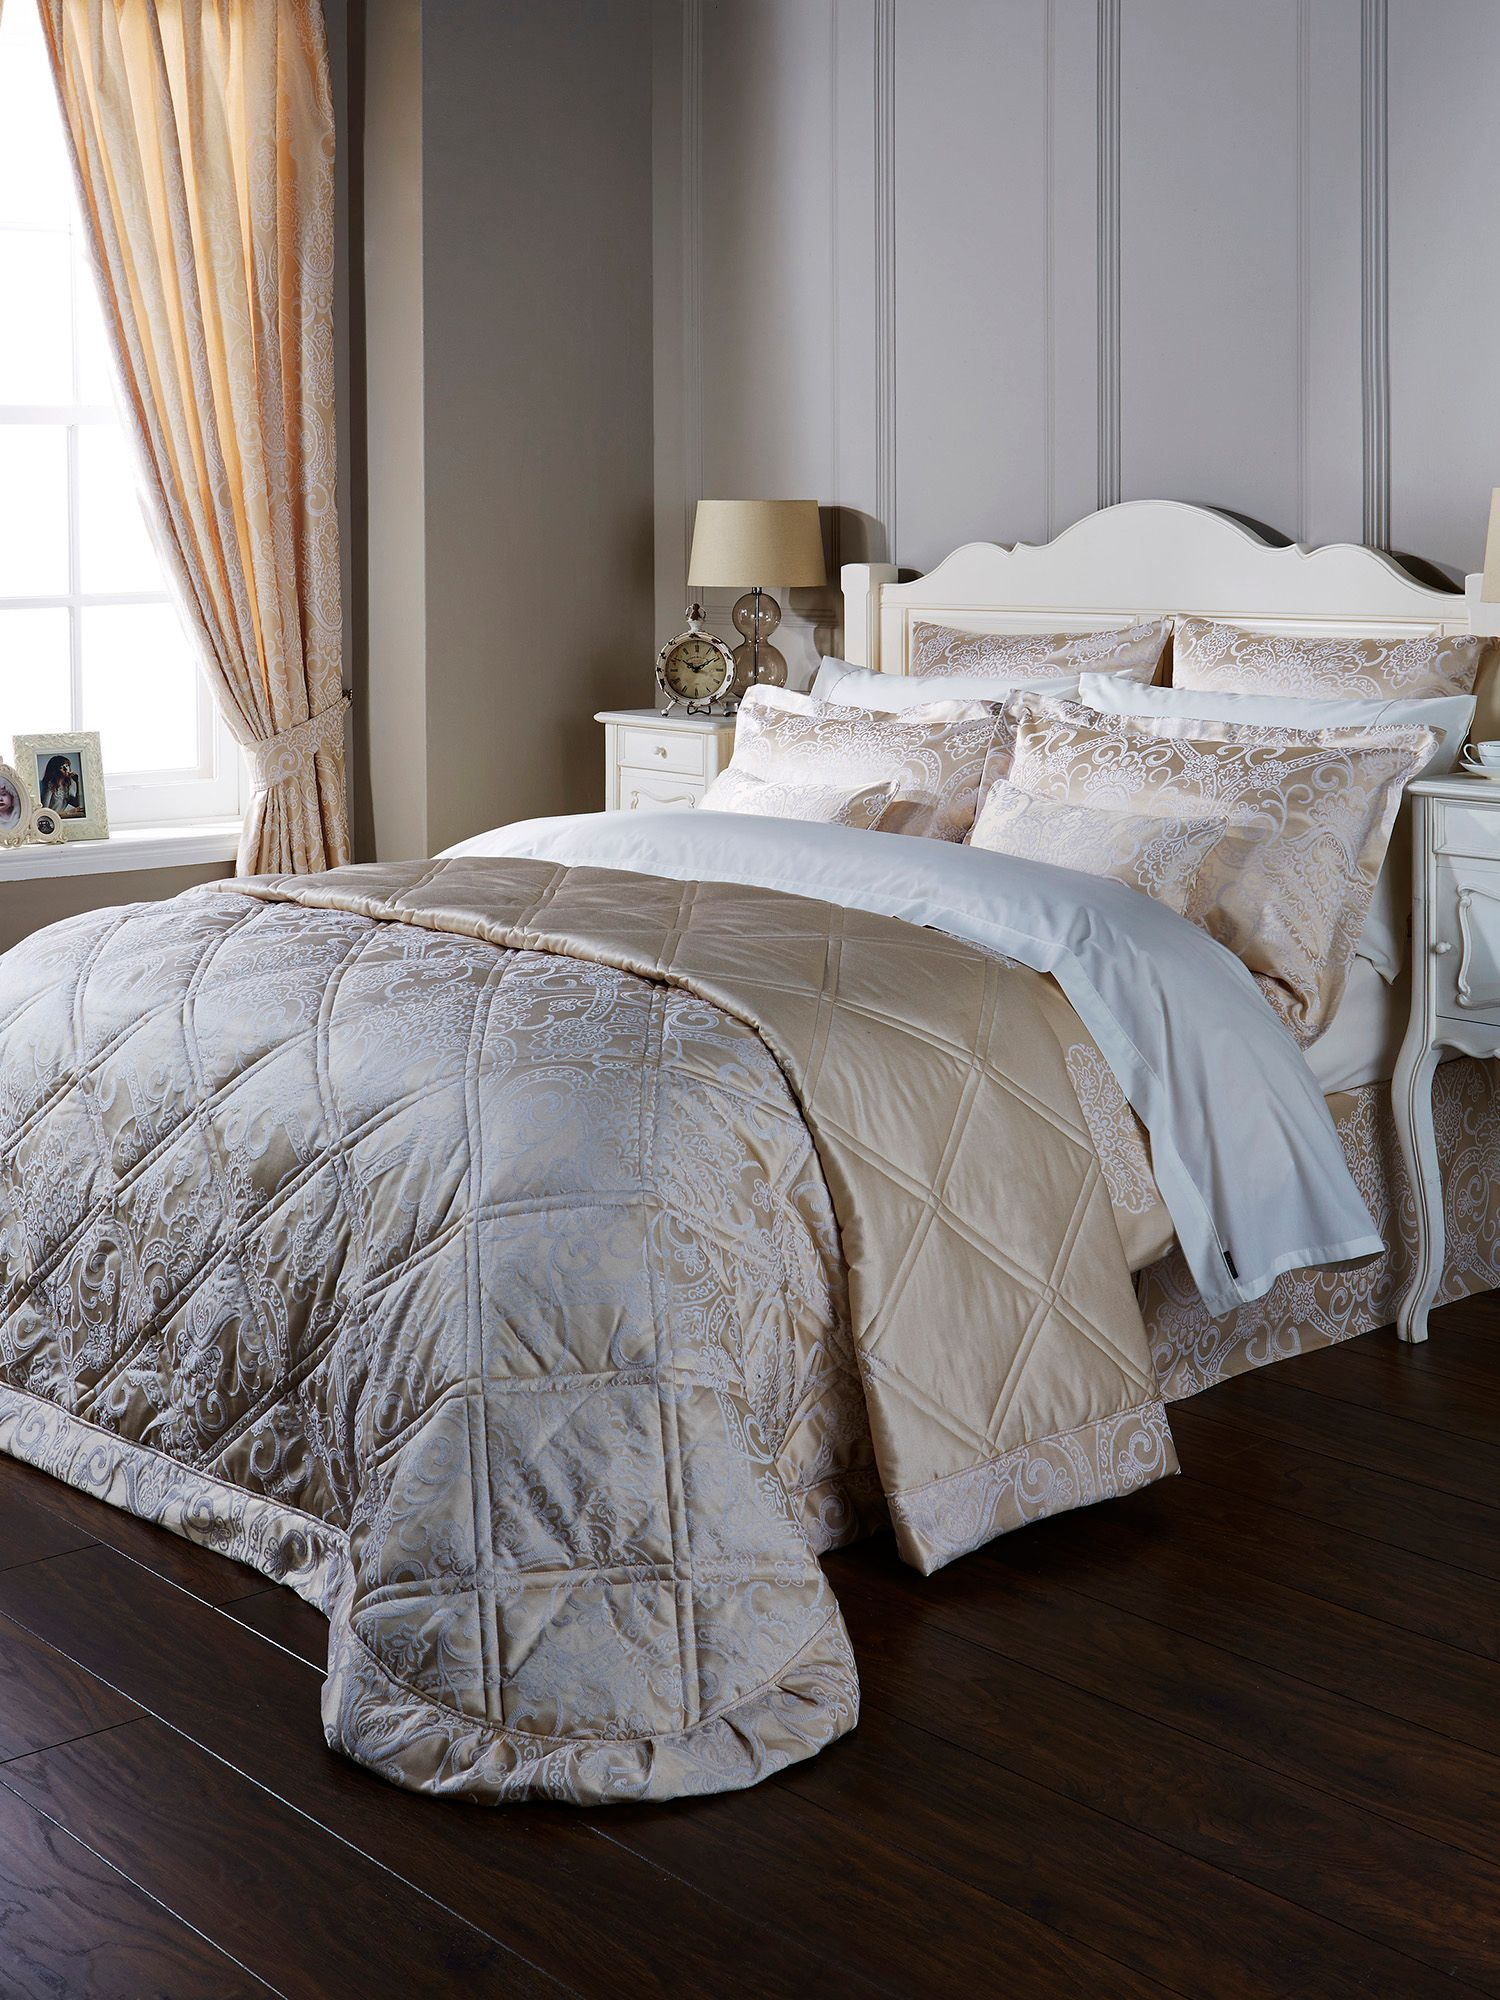 Tiverton Gold Bedlinen